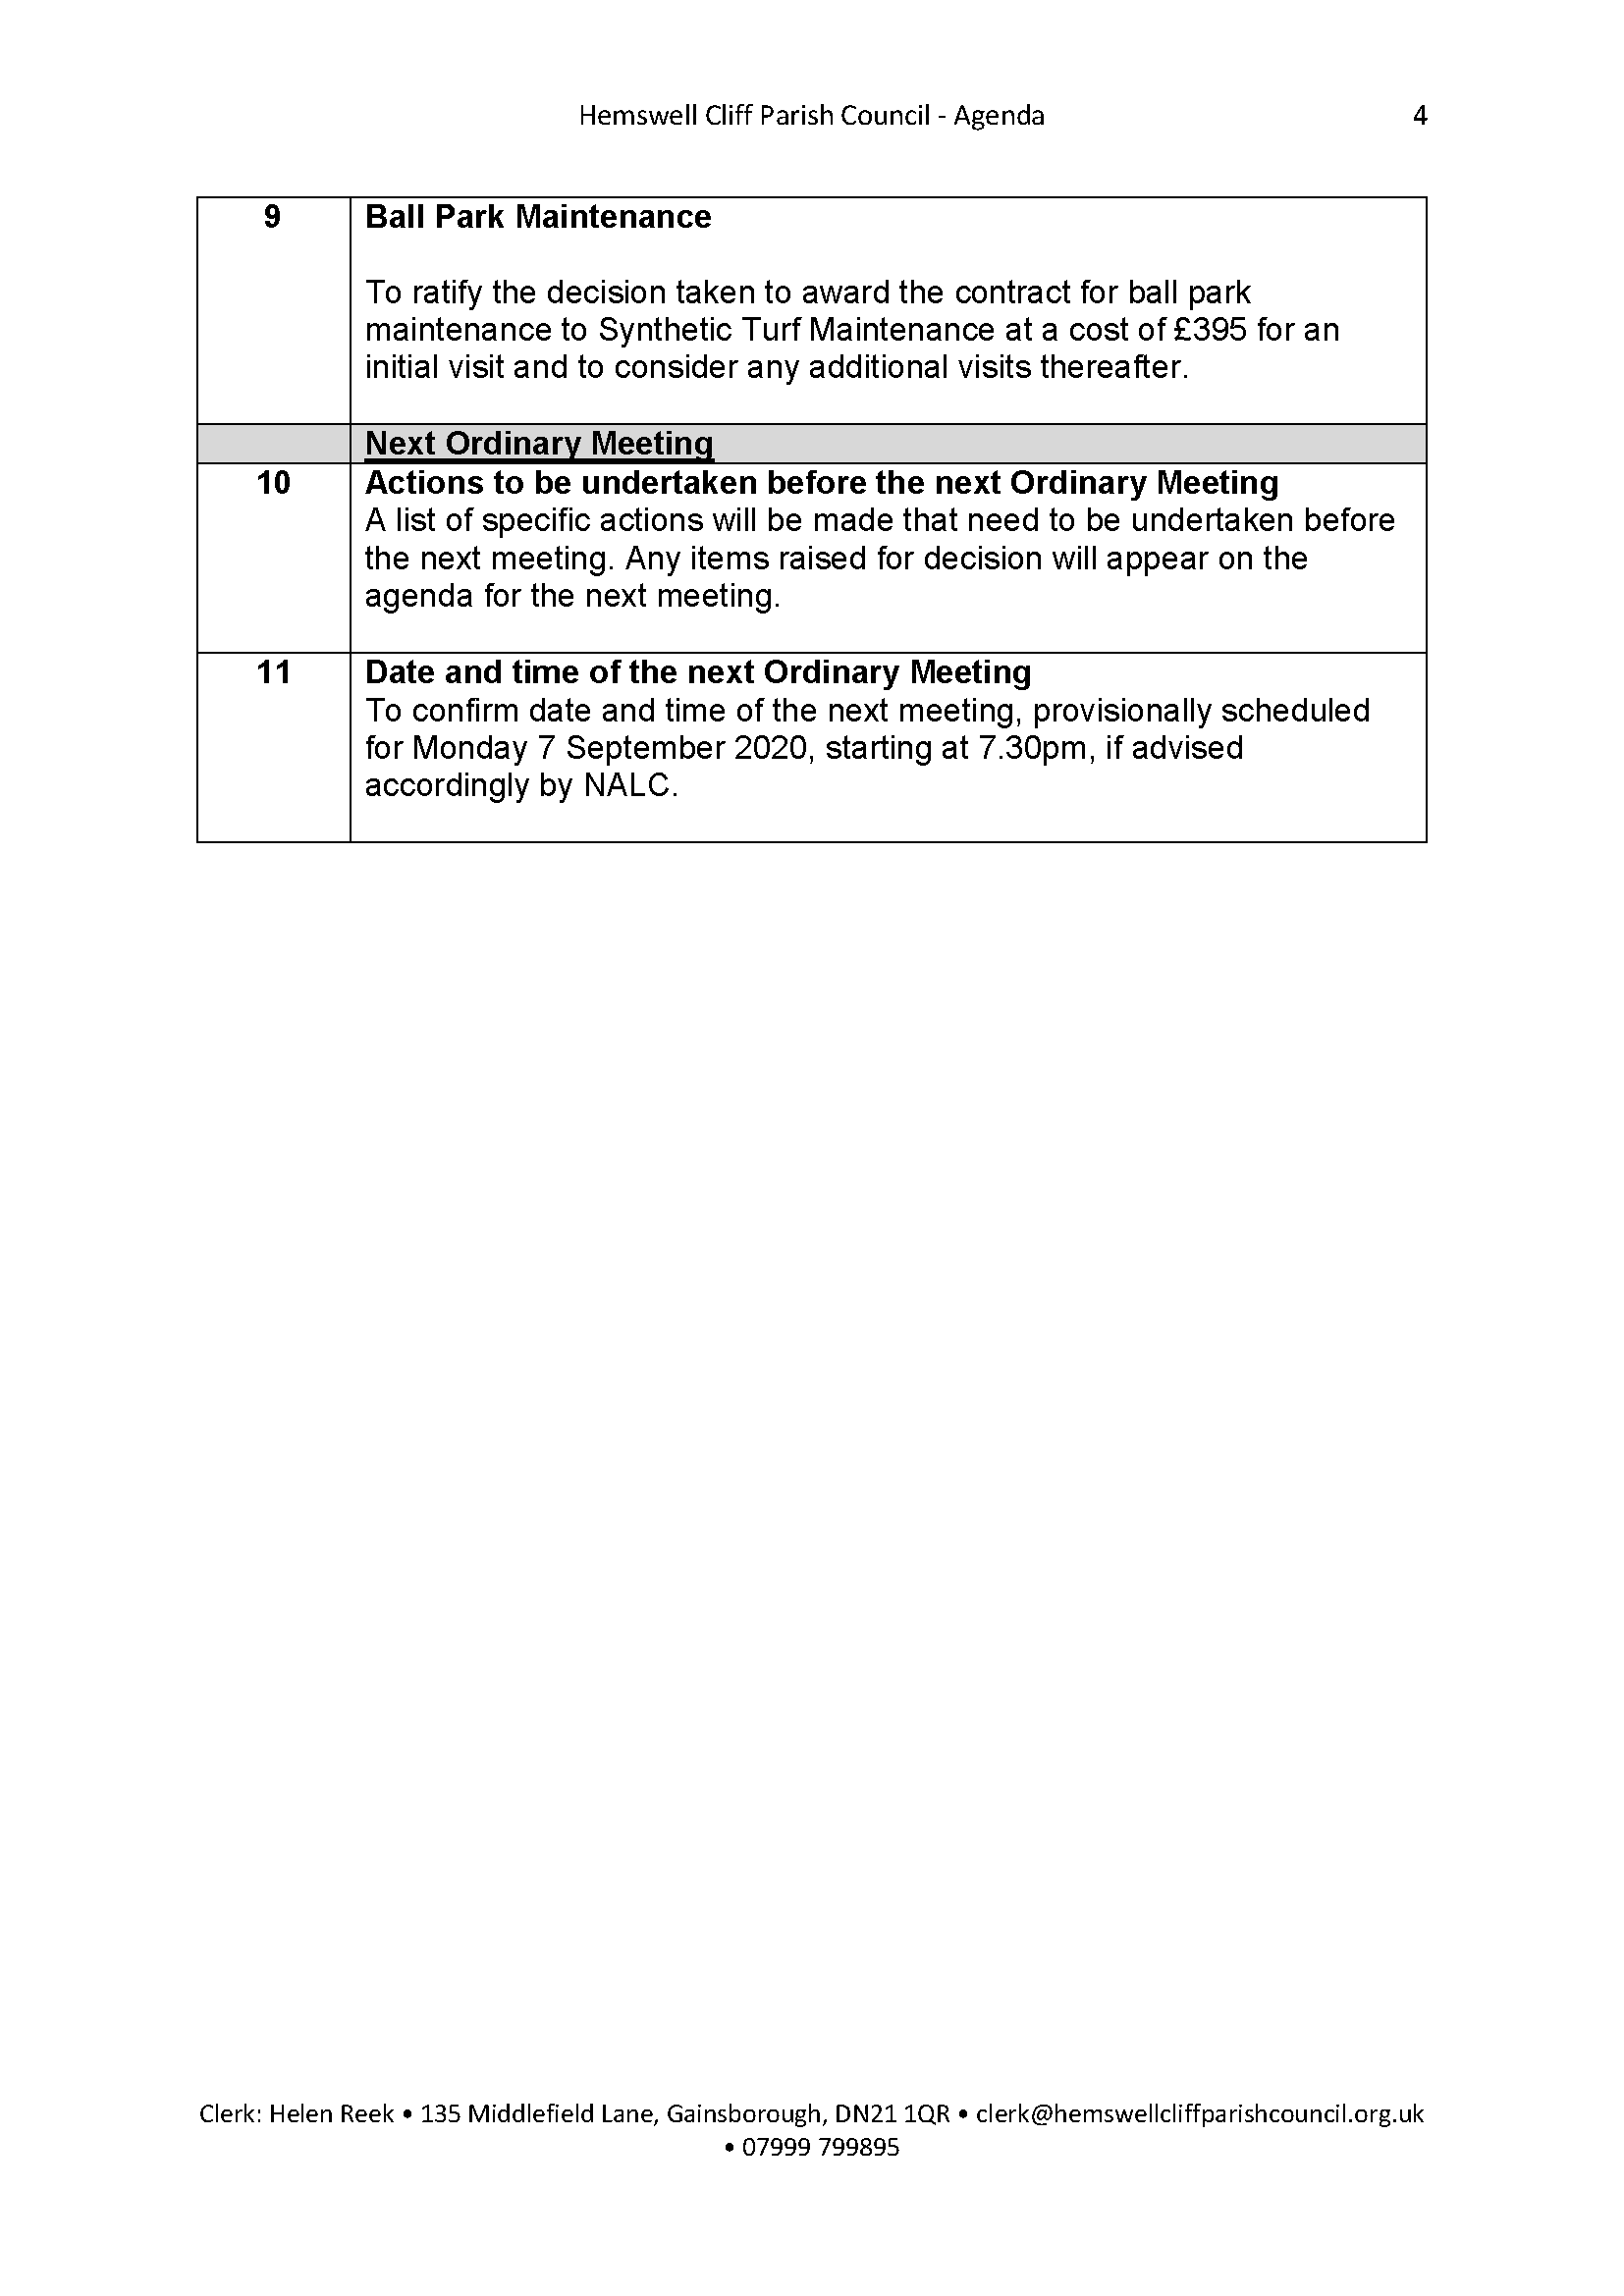 HCPC_Agenda_27.07.20_Page_4.png